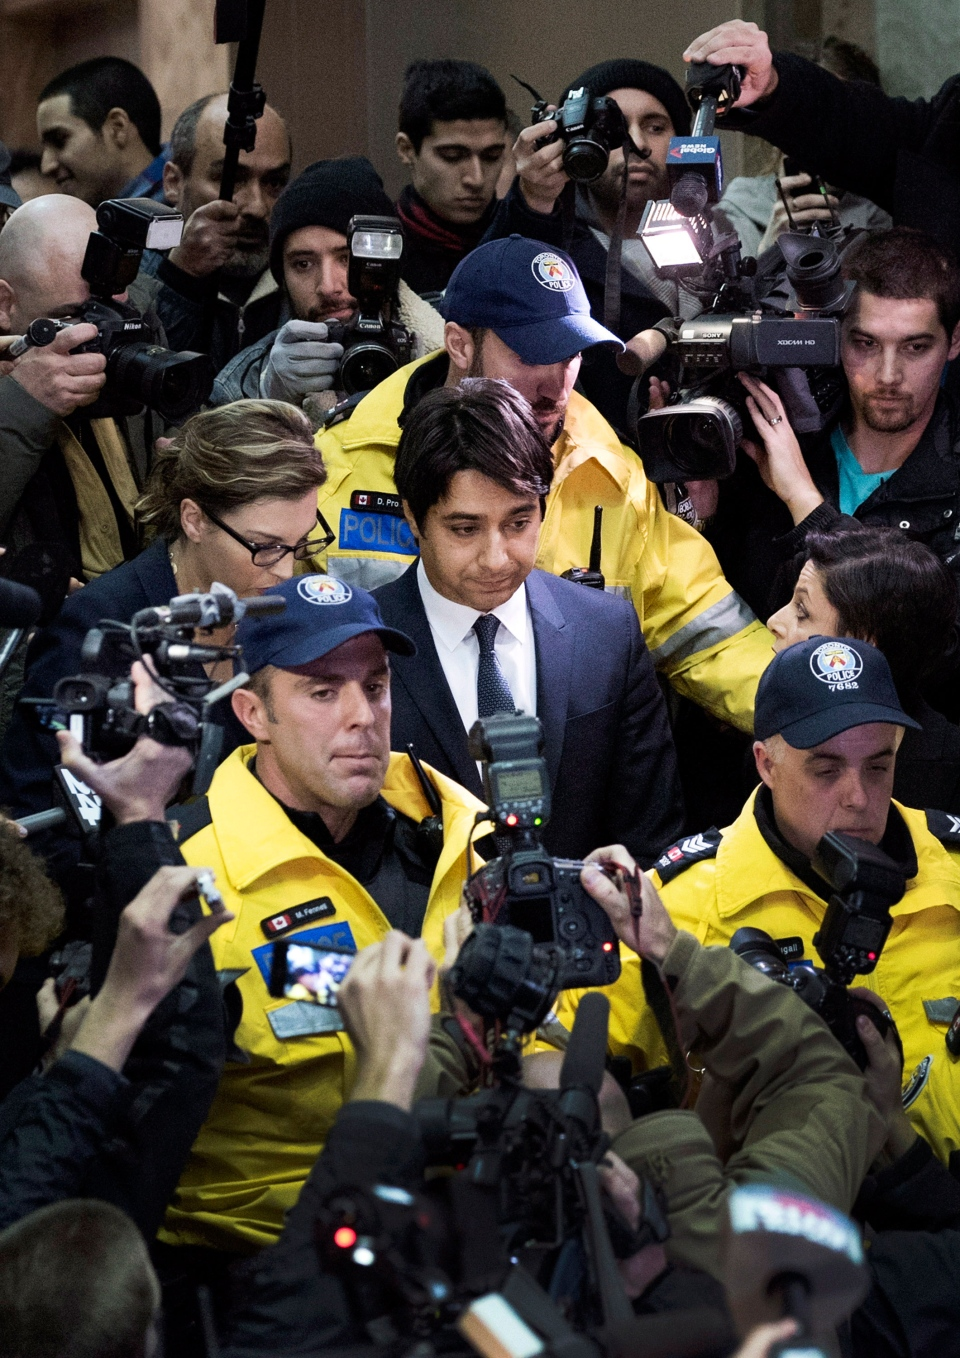 Jian Ghomeshi makes his way through a mob of media at a Toronto court Wednesday, Nov. 26, 2014. (Darren Calabrese / THE CANADIAN PRESS)